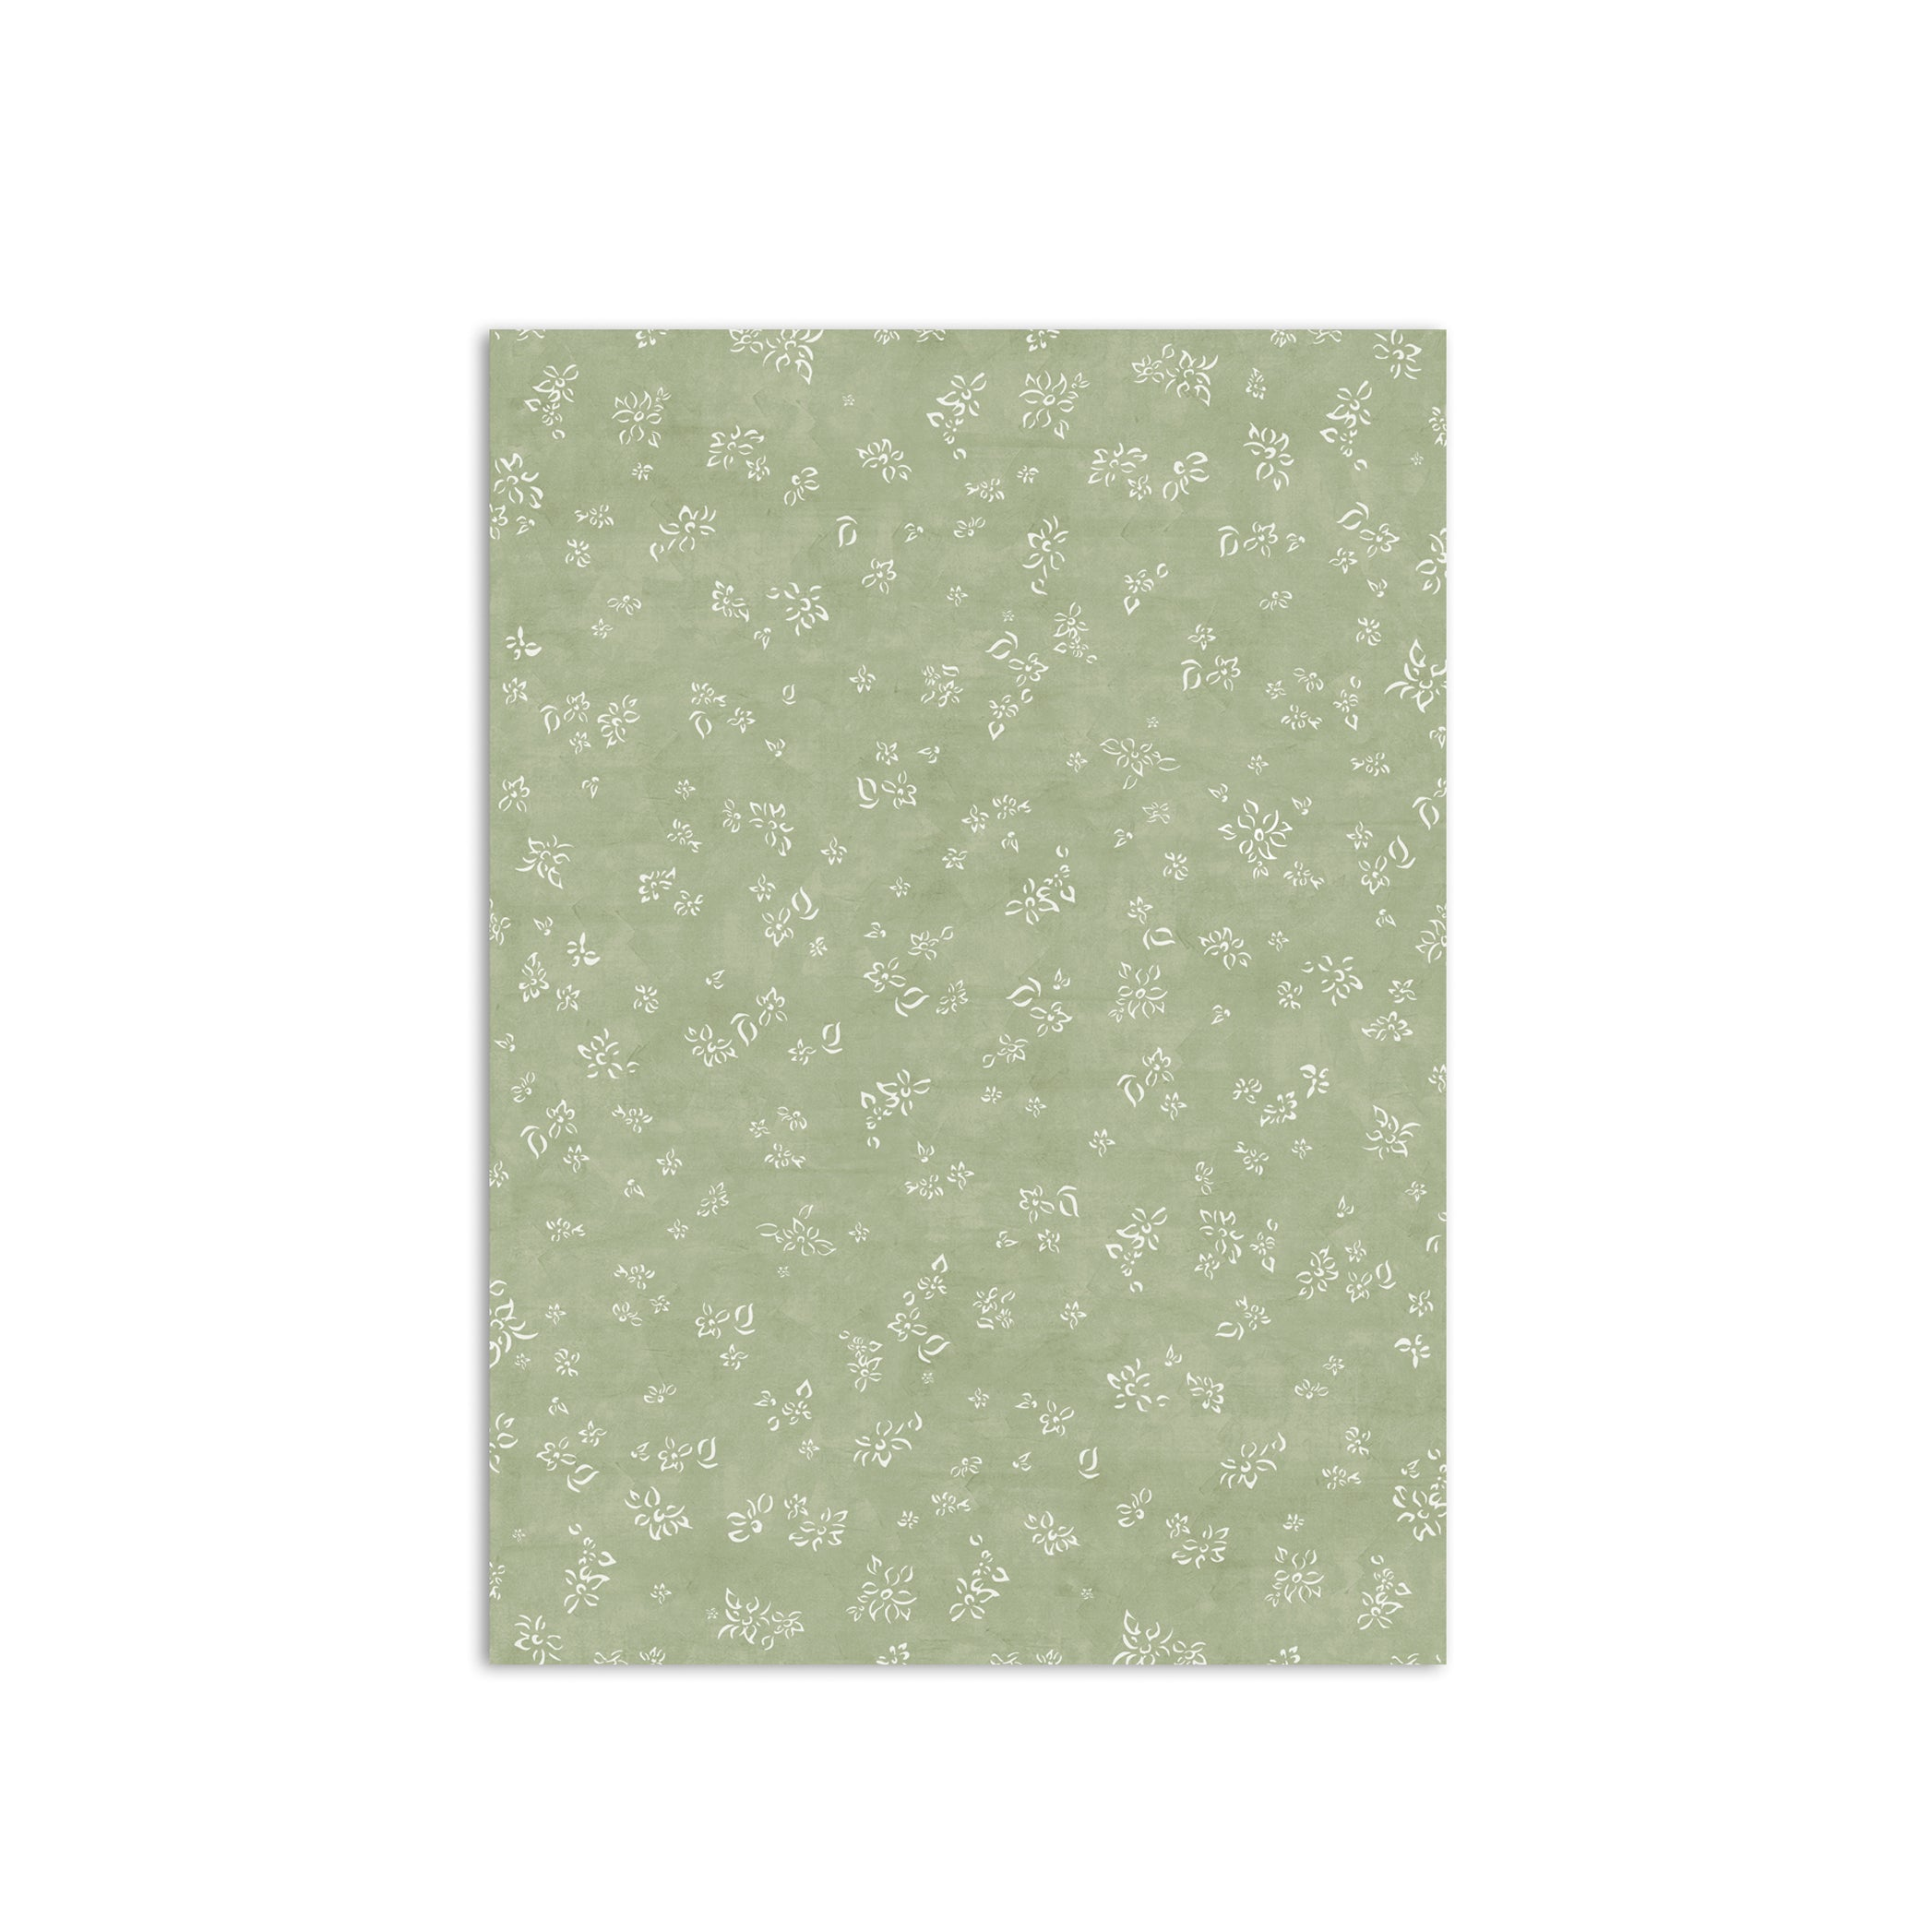 S&B Falling Flower Wrapping Paper in Pale Green, Roll of 4